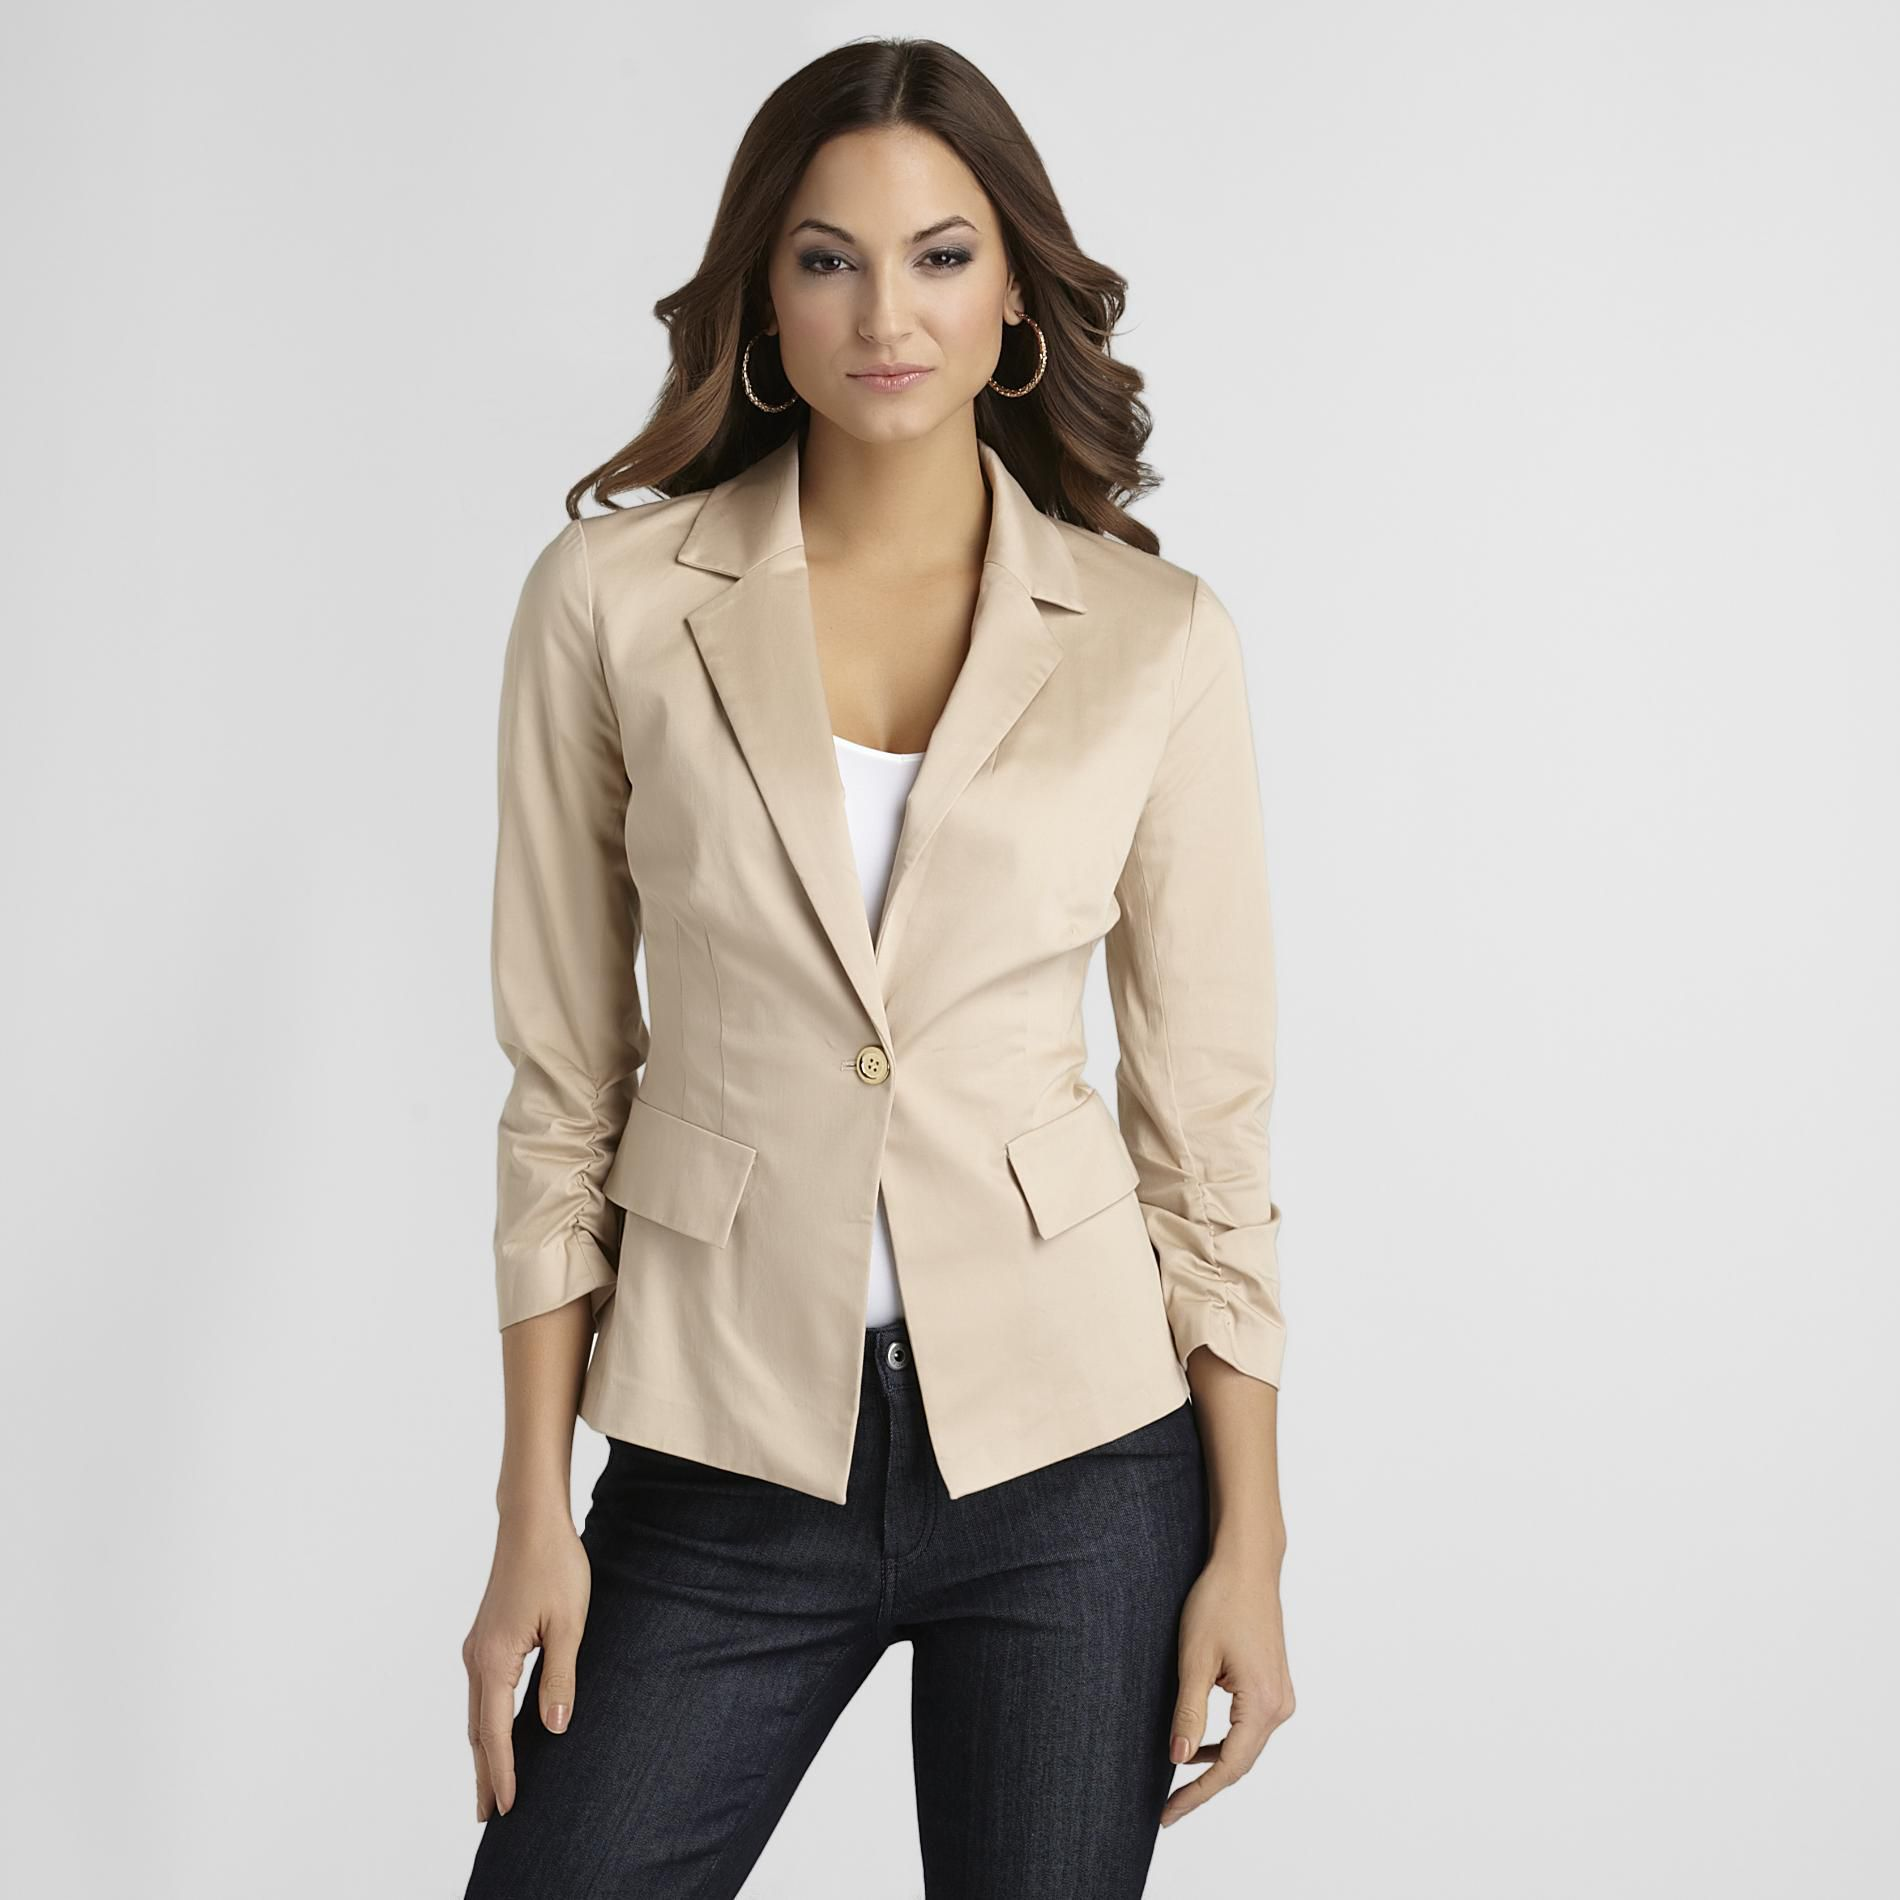 Women's Fitted Blazer - Clearance